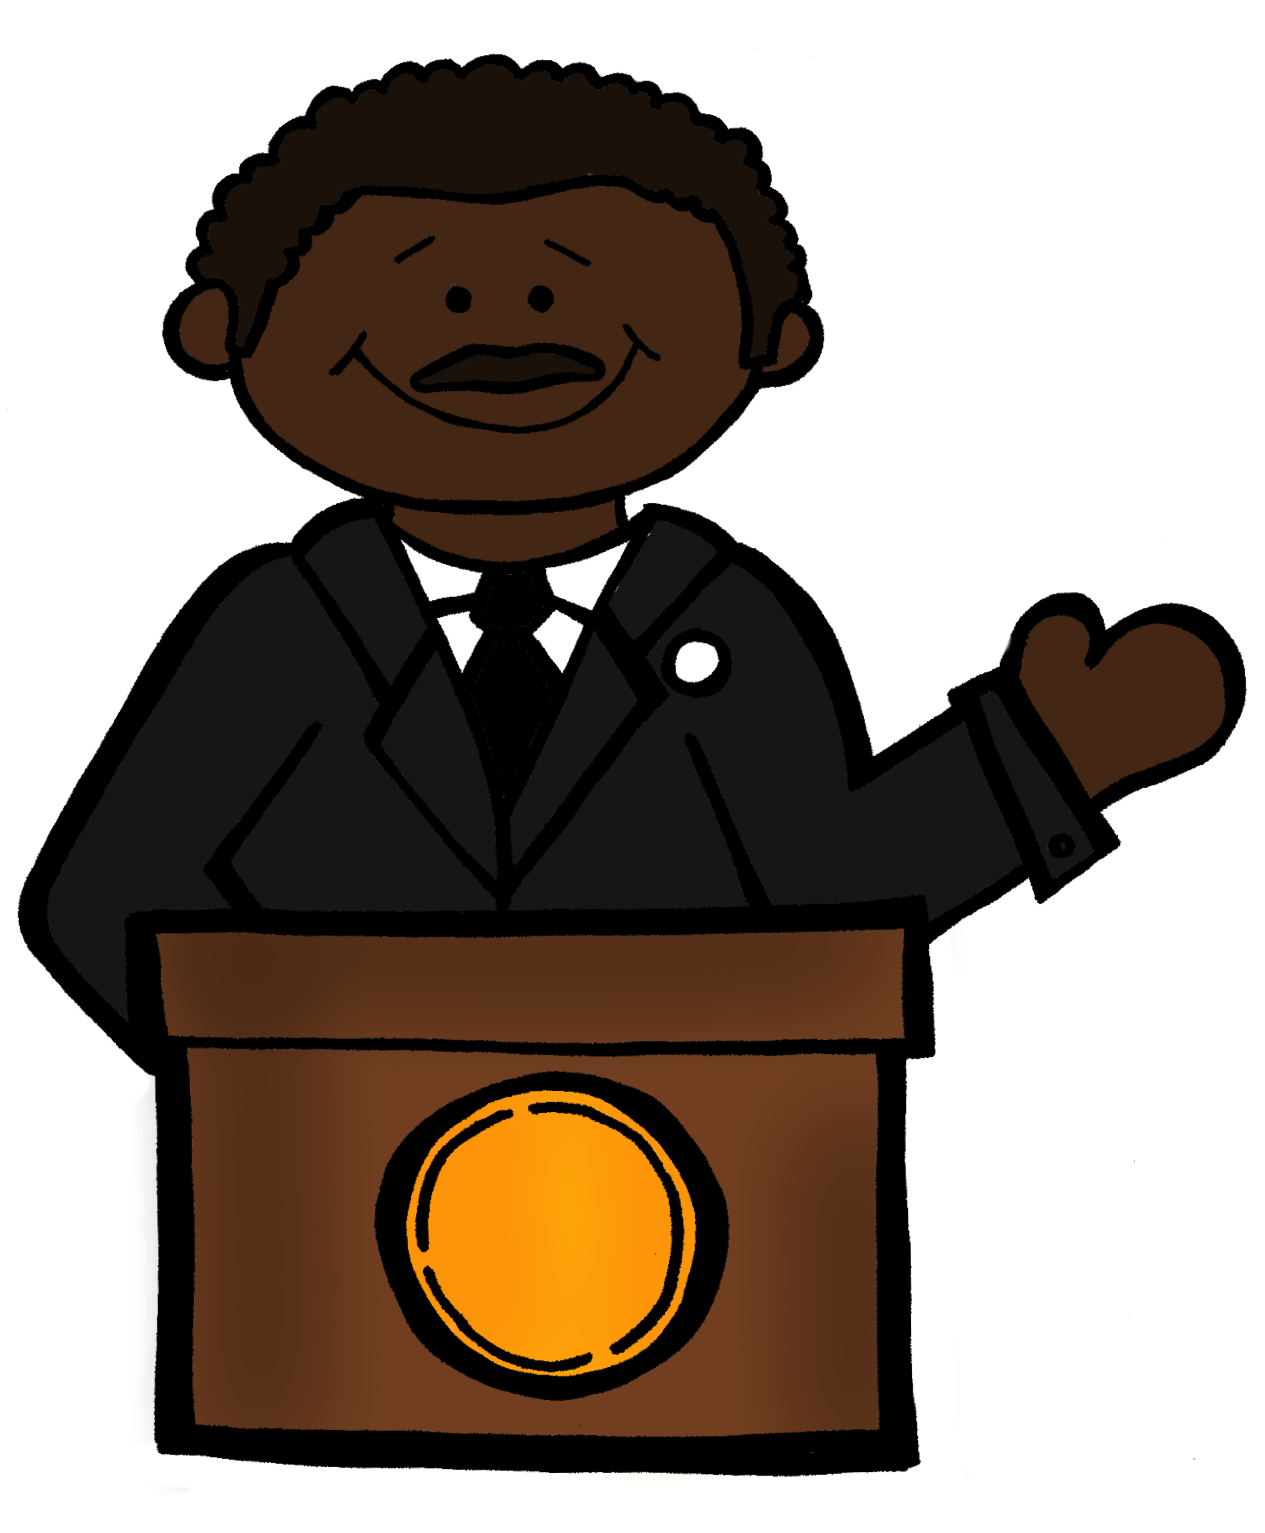 banner royalty free library Mlk clipart. Free cliparts download clip.